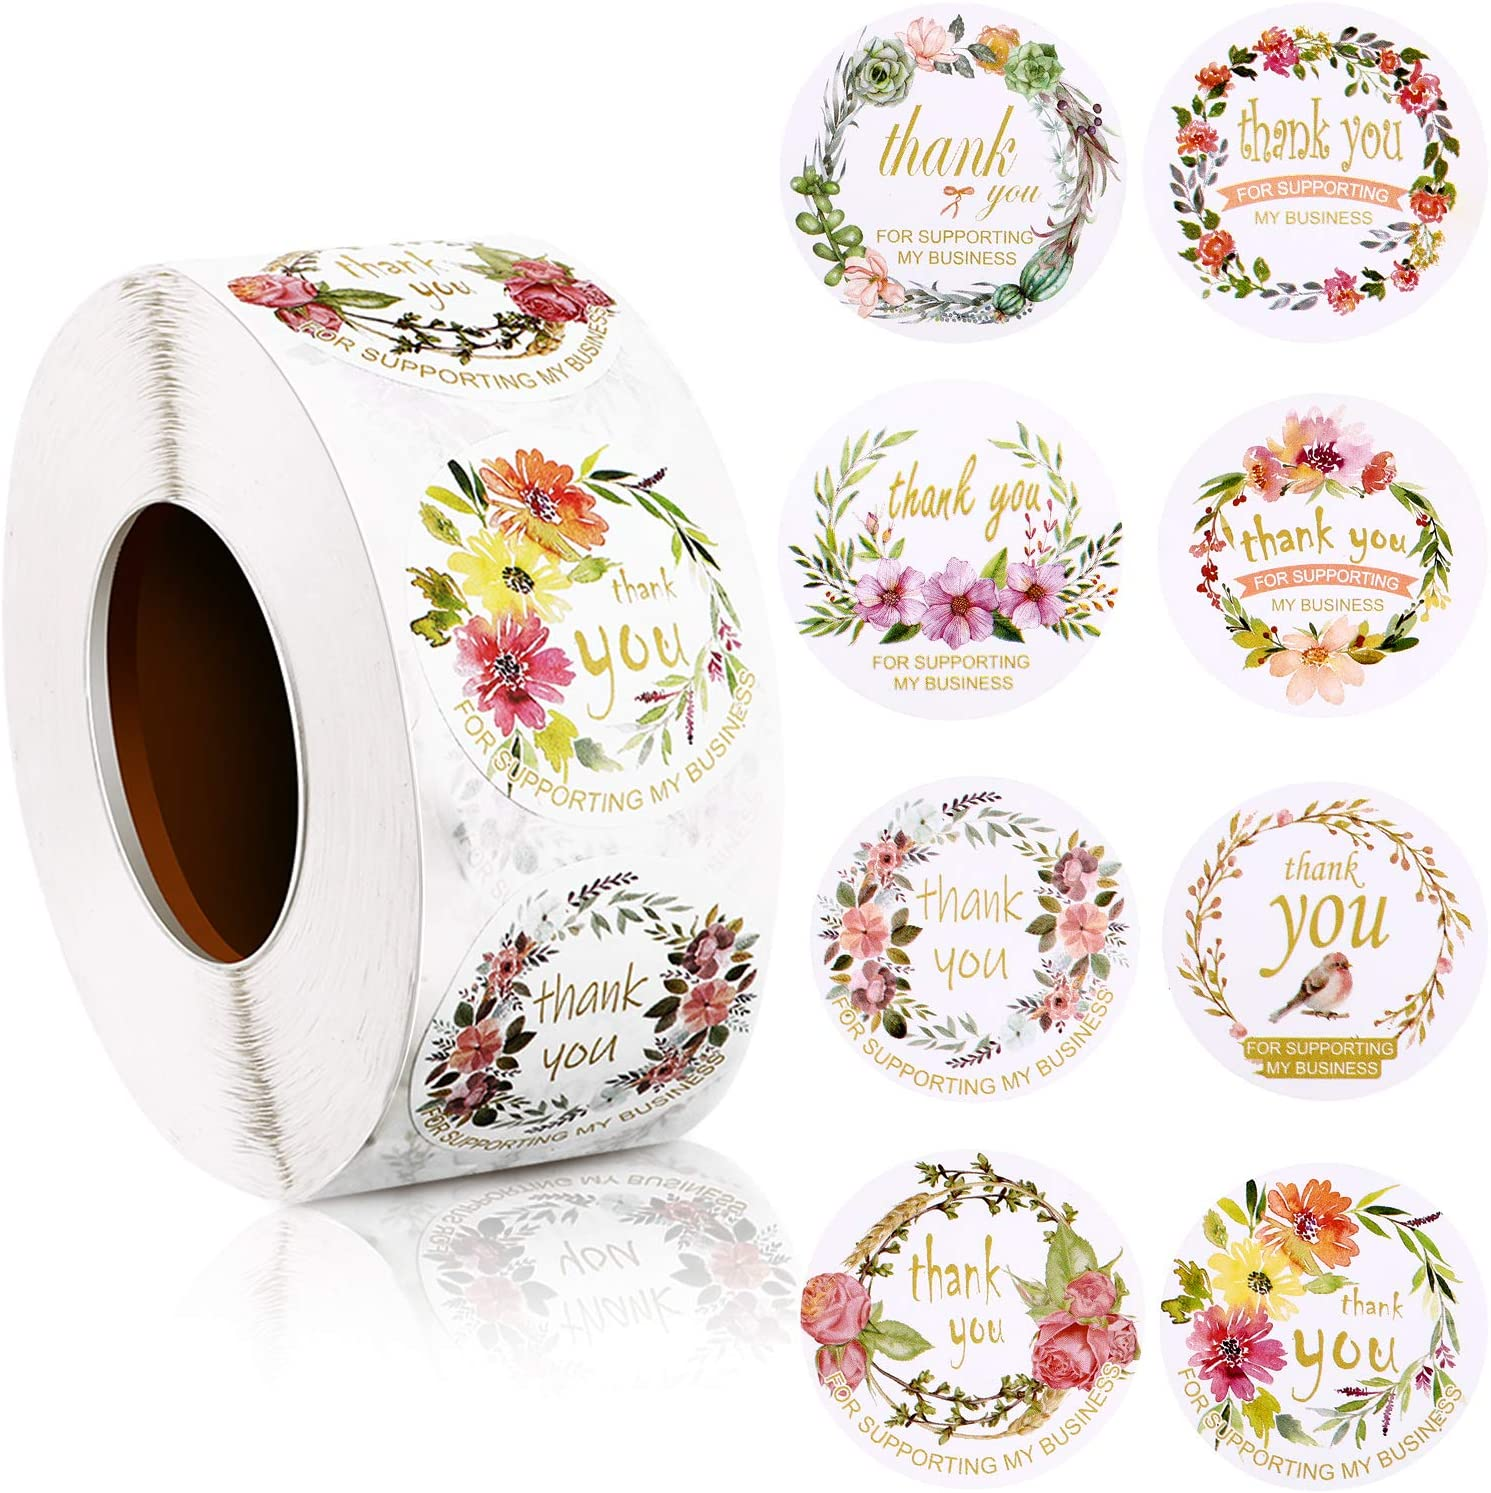 1000 Pieces Thank You for Supporting My Business Label Stickers 1.5 Inch Round Floral Business Label Decals Adhesive Flower Printed Seal Stickers for Bakeries Business Owner Handmade Good